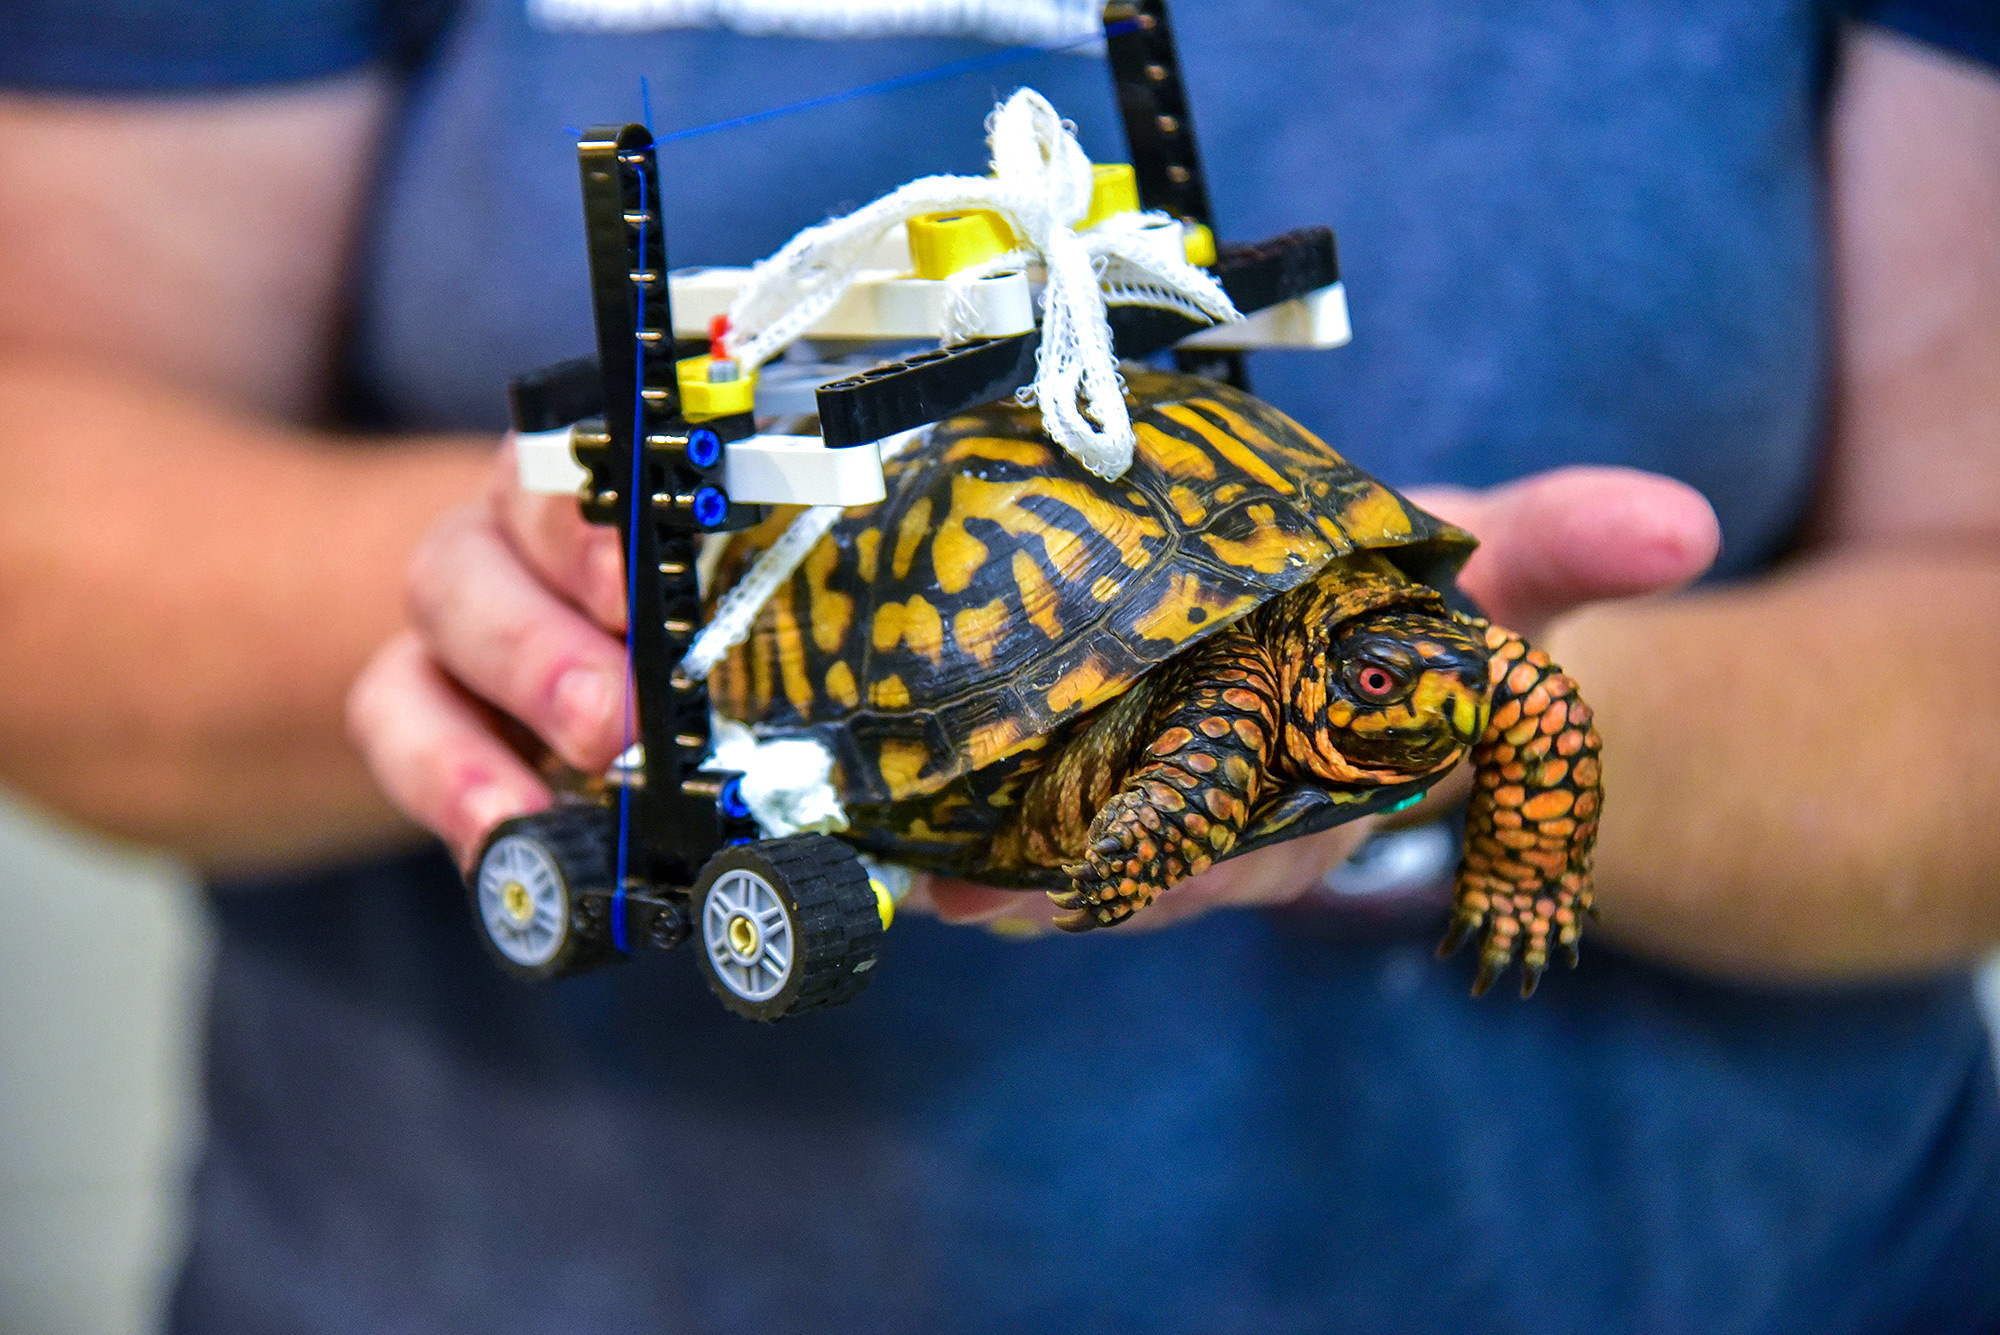 A US tortoise has been given a second chance, thanks to LEGO®